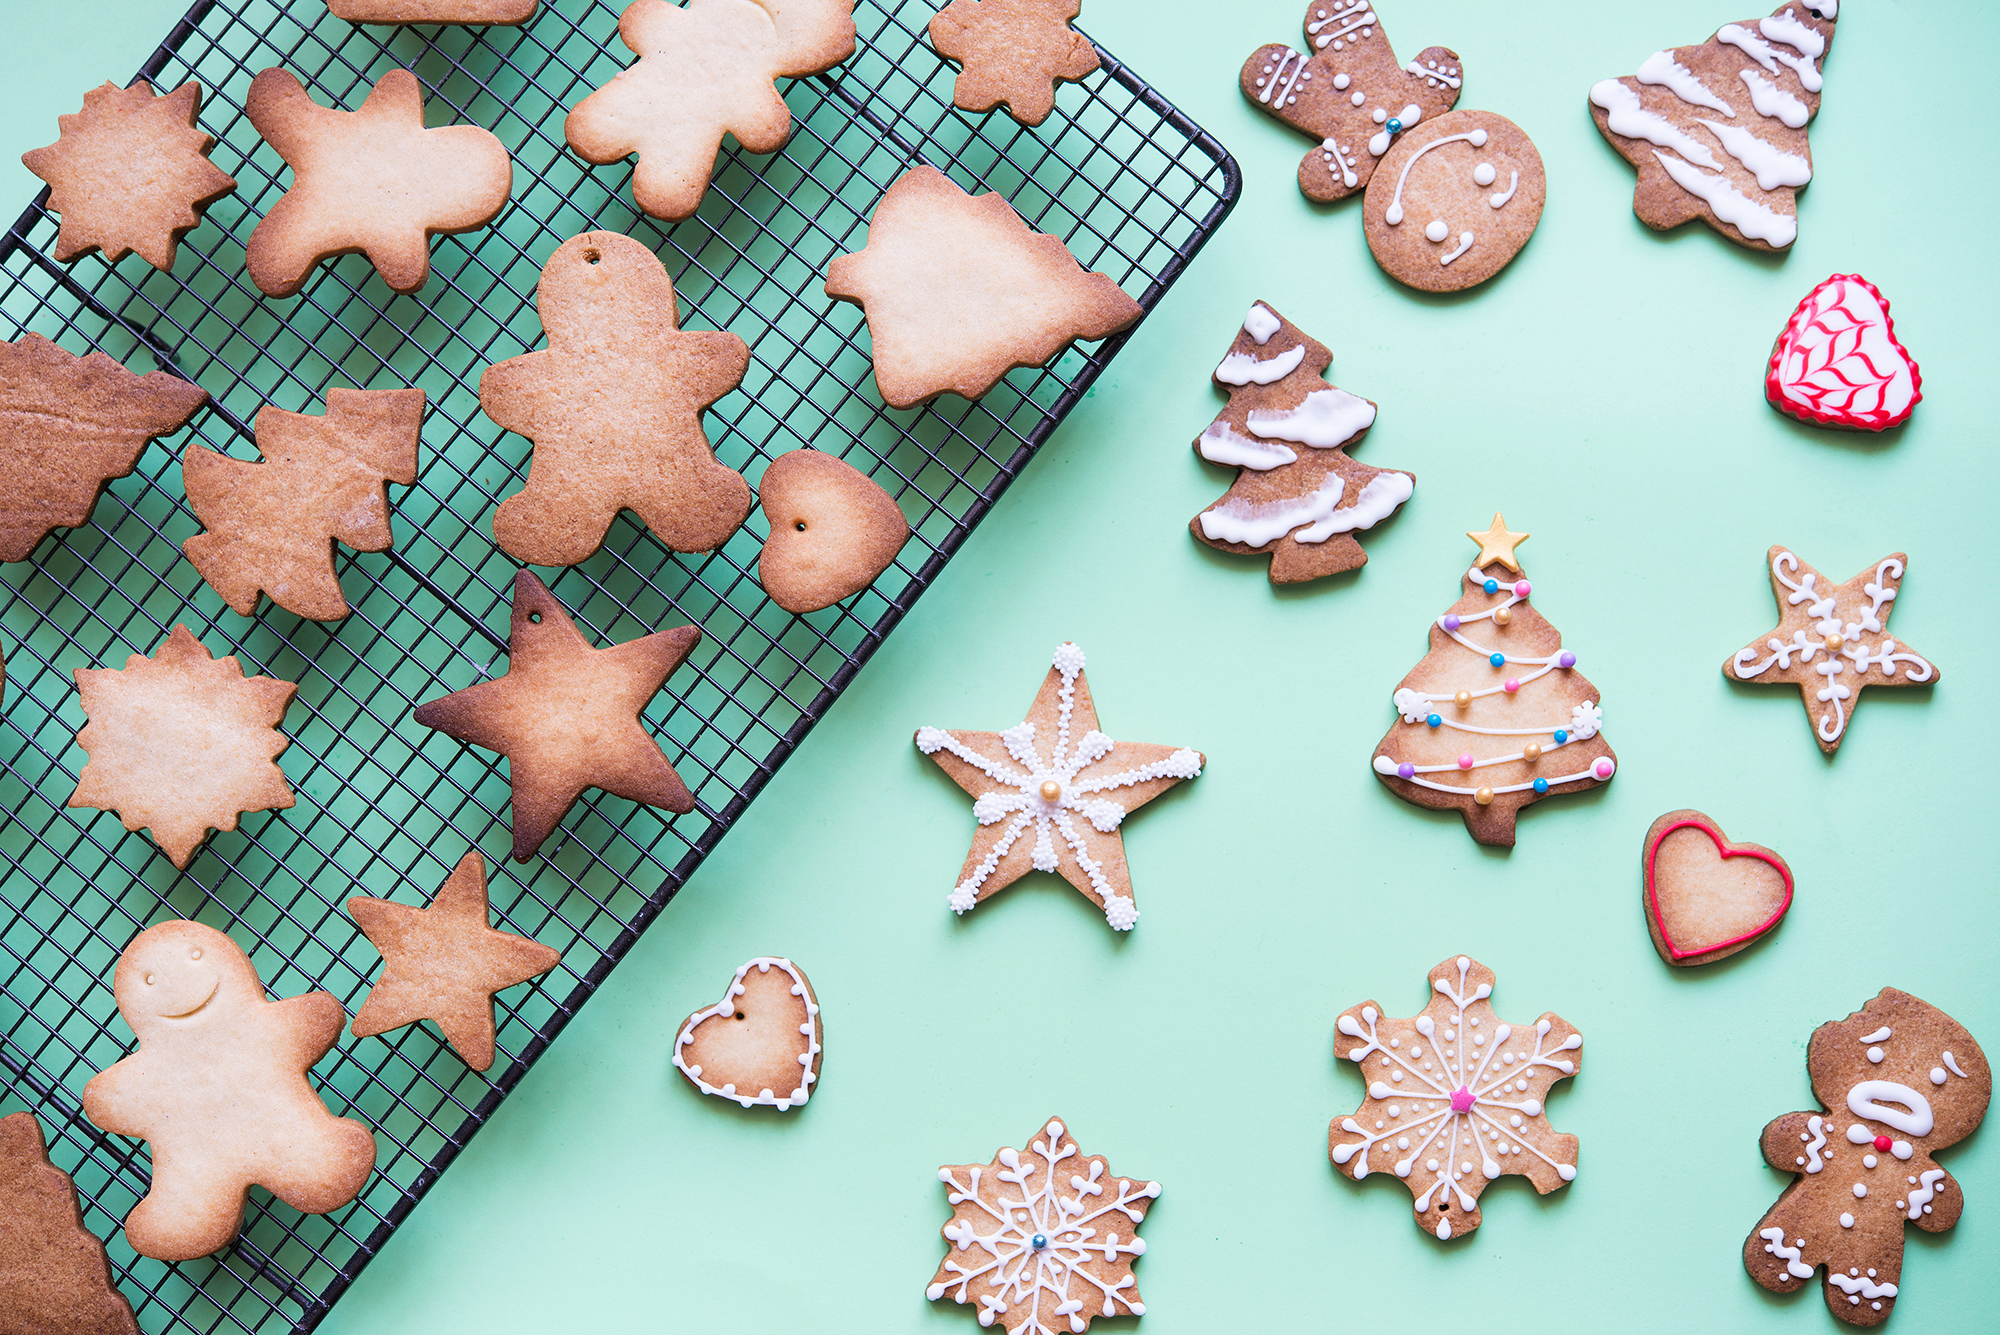 Buckingham Palace Shares Christmas Gingerbread Biscuits Recipe